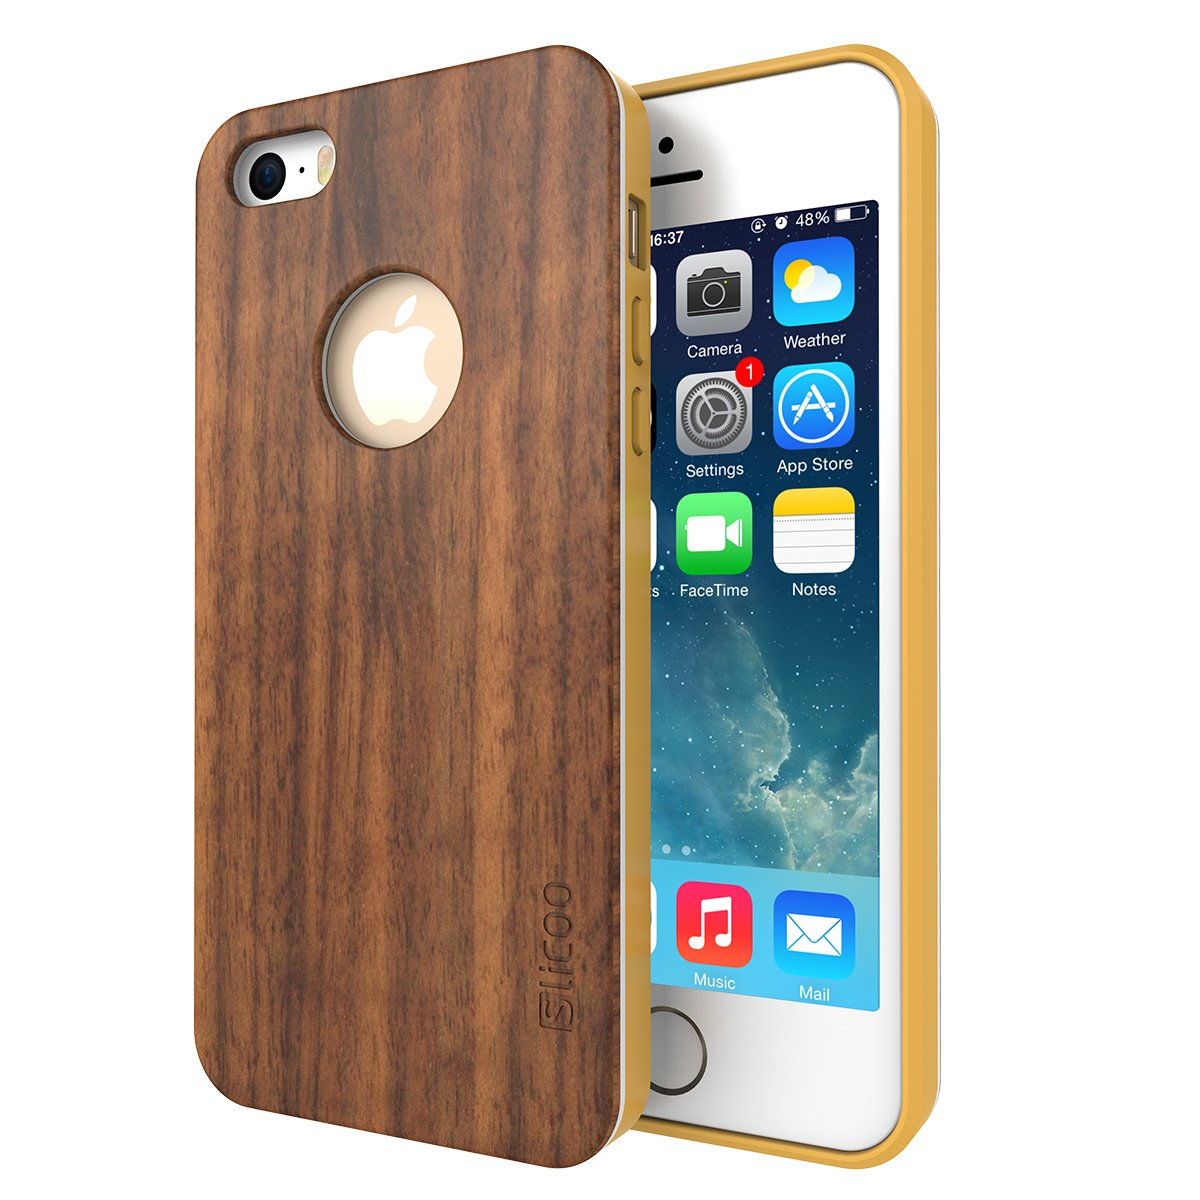 Iphone 5S Case Slicoo Nature Series Bamboo Wood Slim Covering Case For Iphone.. 12